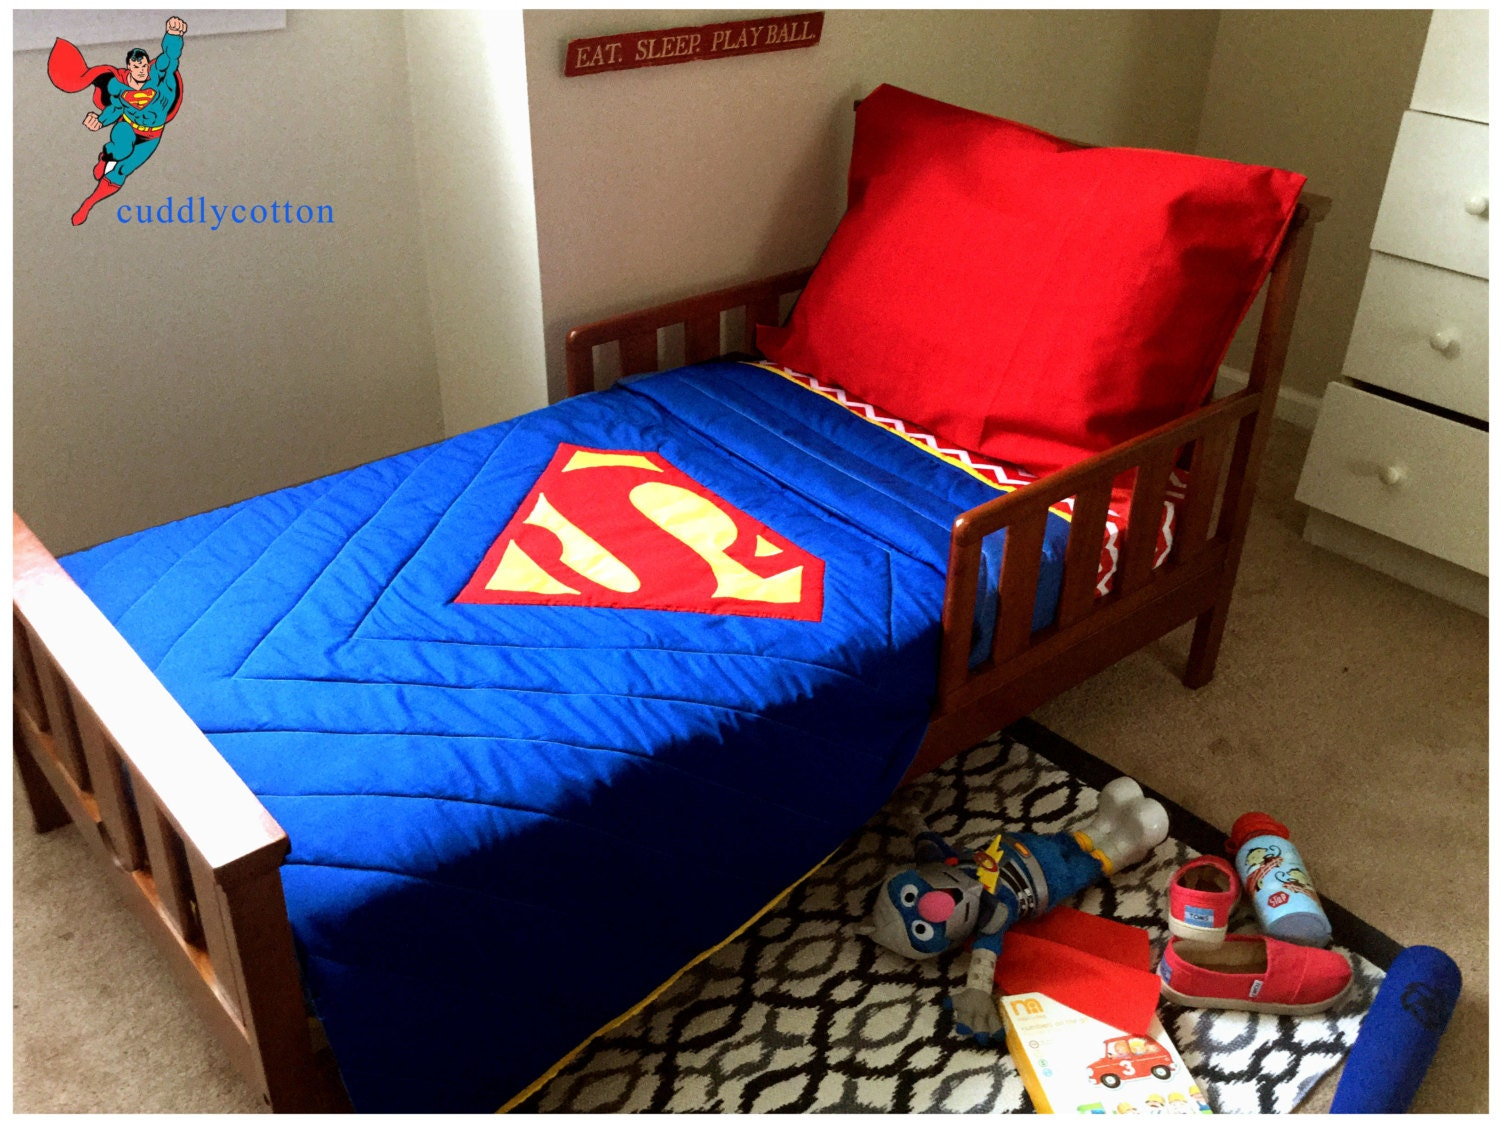 Superman Toddler Bedding 100% Cotton by cuddlycotton on Etsy